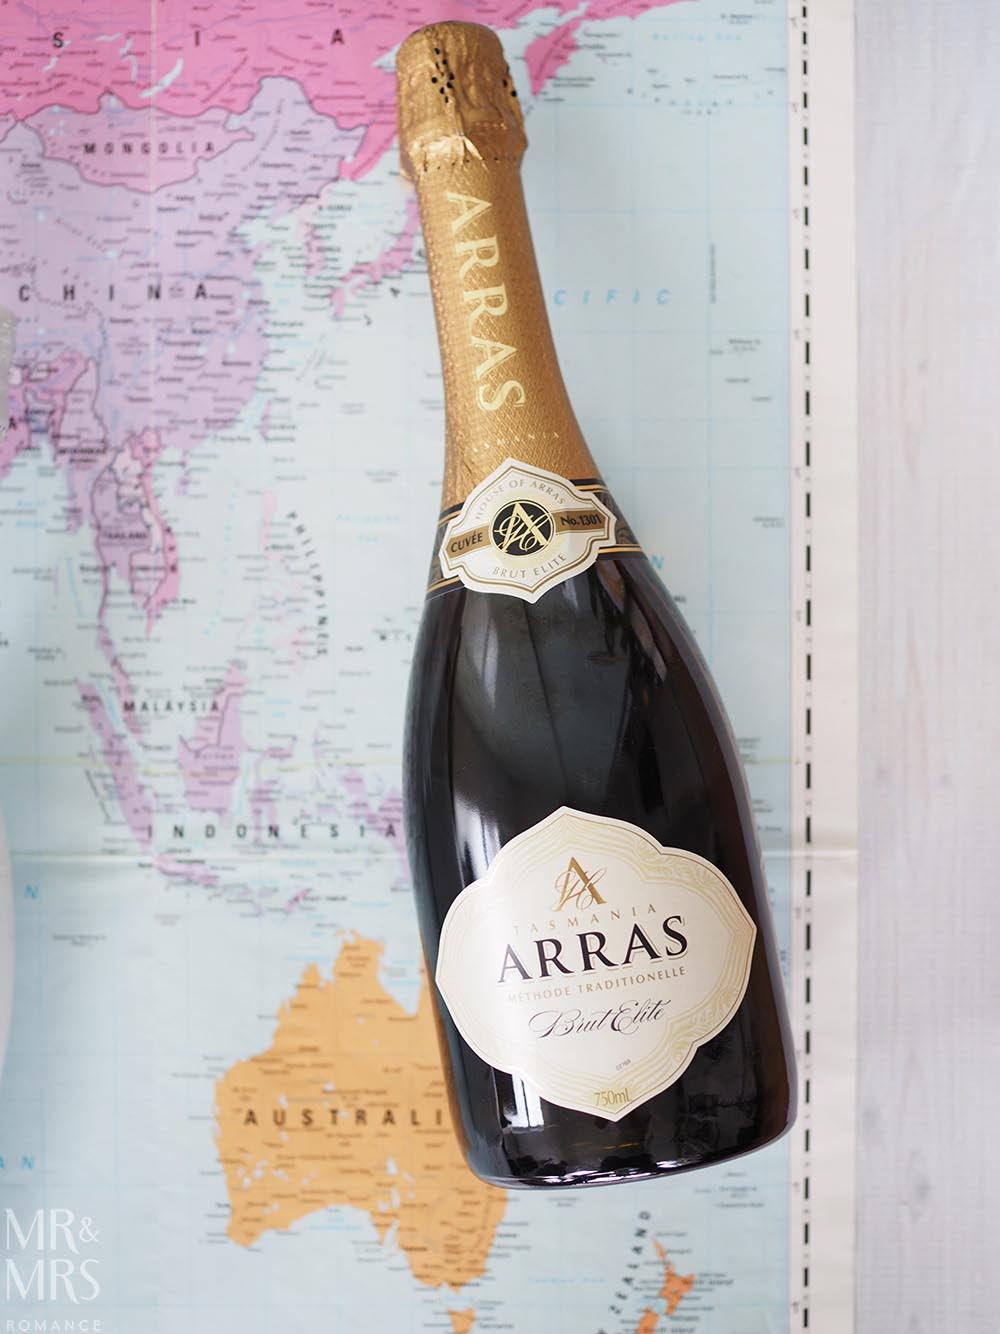 International sparkling wine - House of Arras - Mr and Mrs Romance